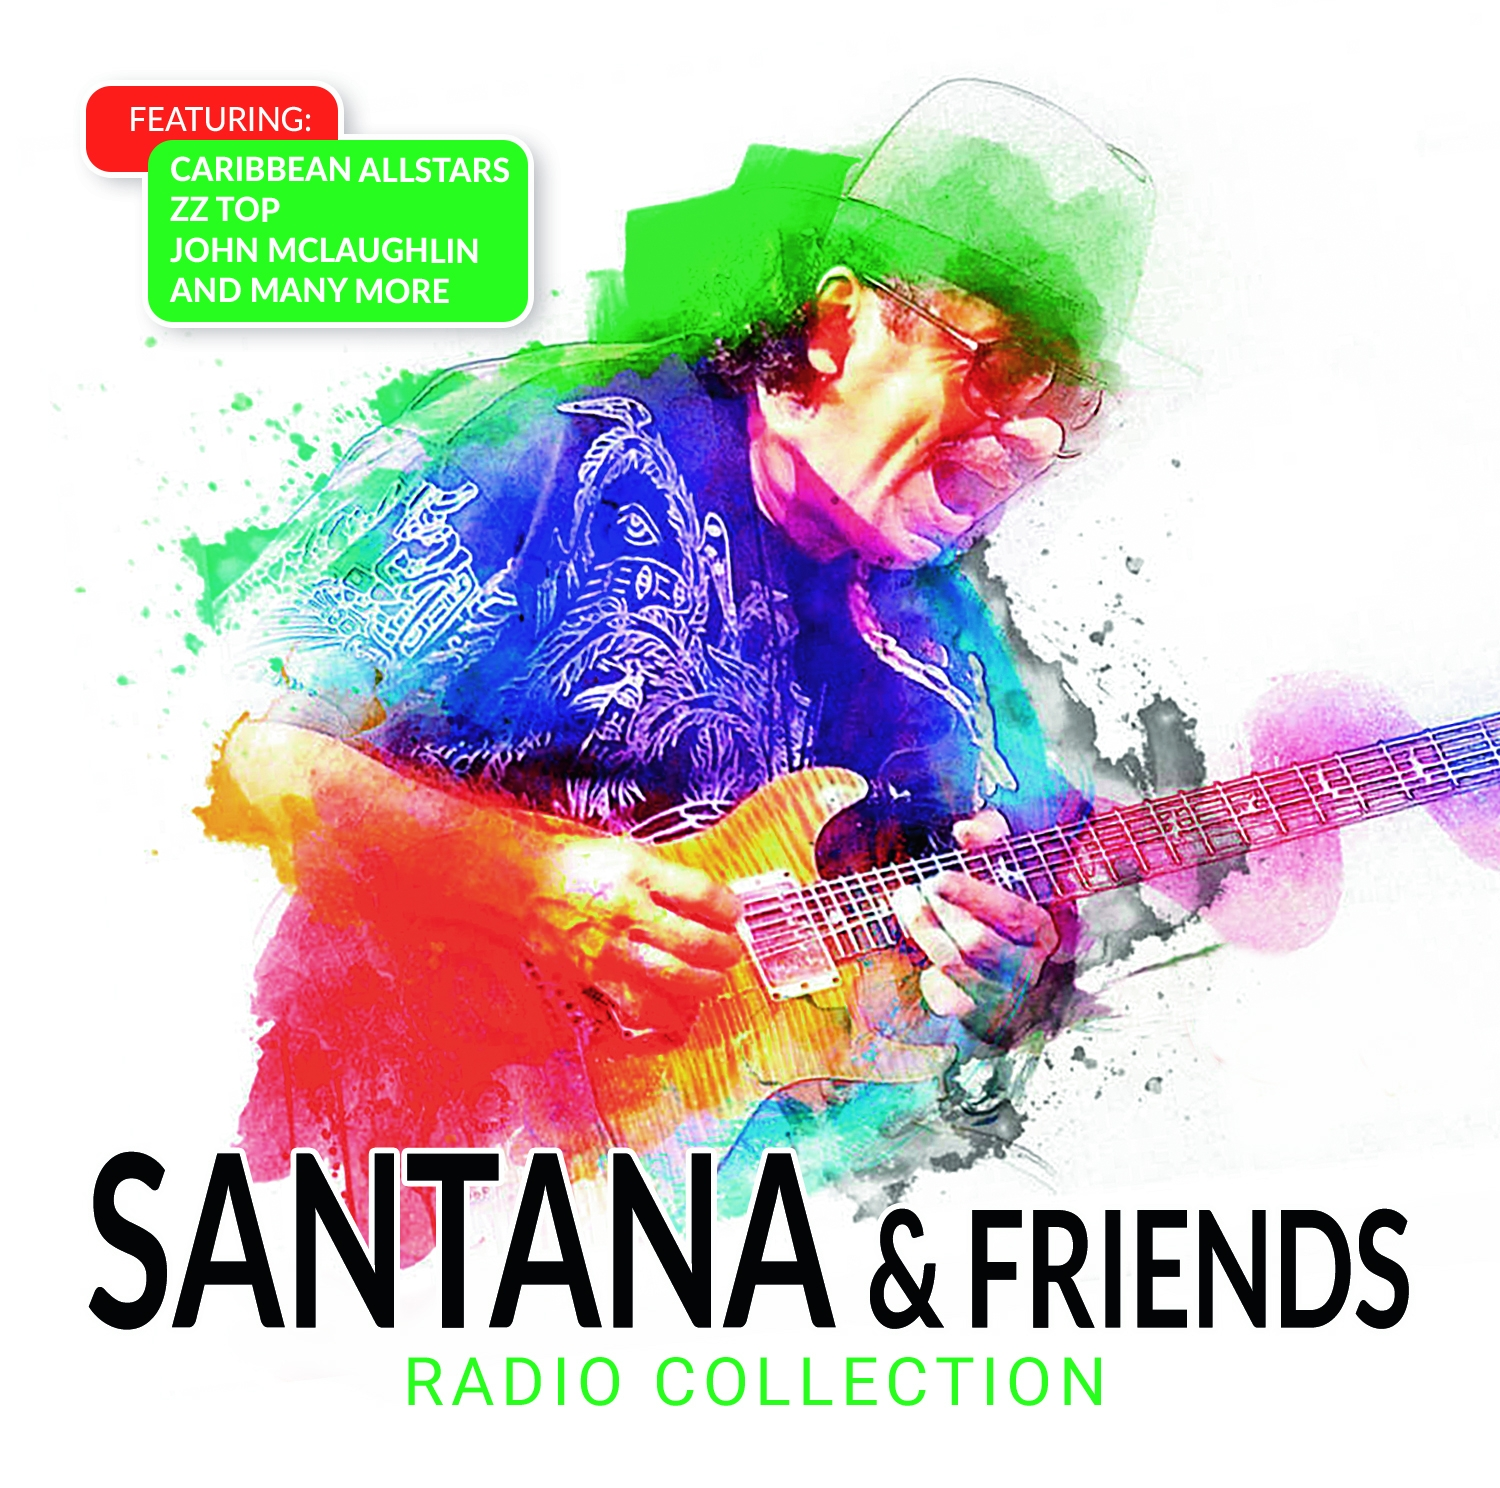 & Friends Radio Collection